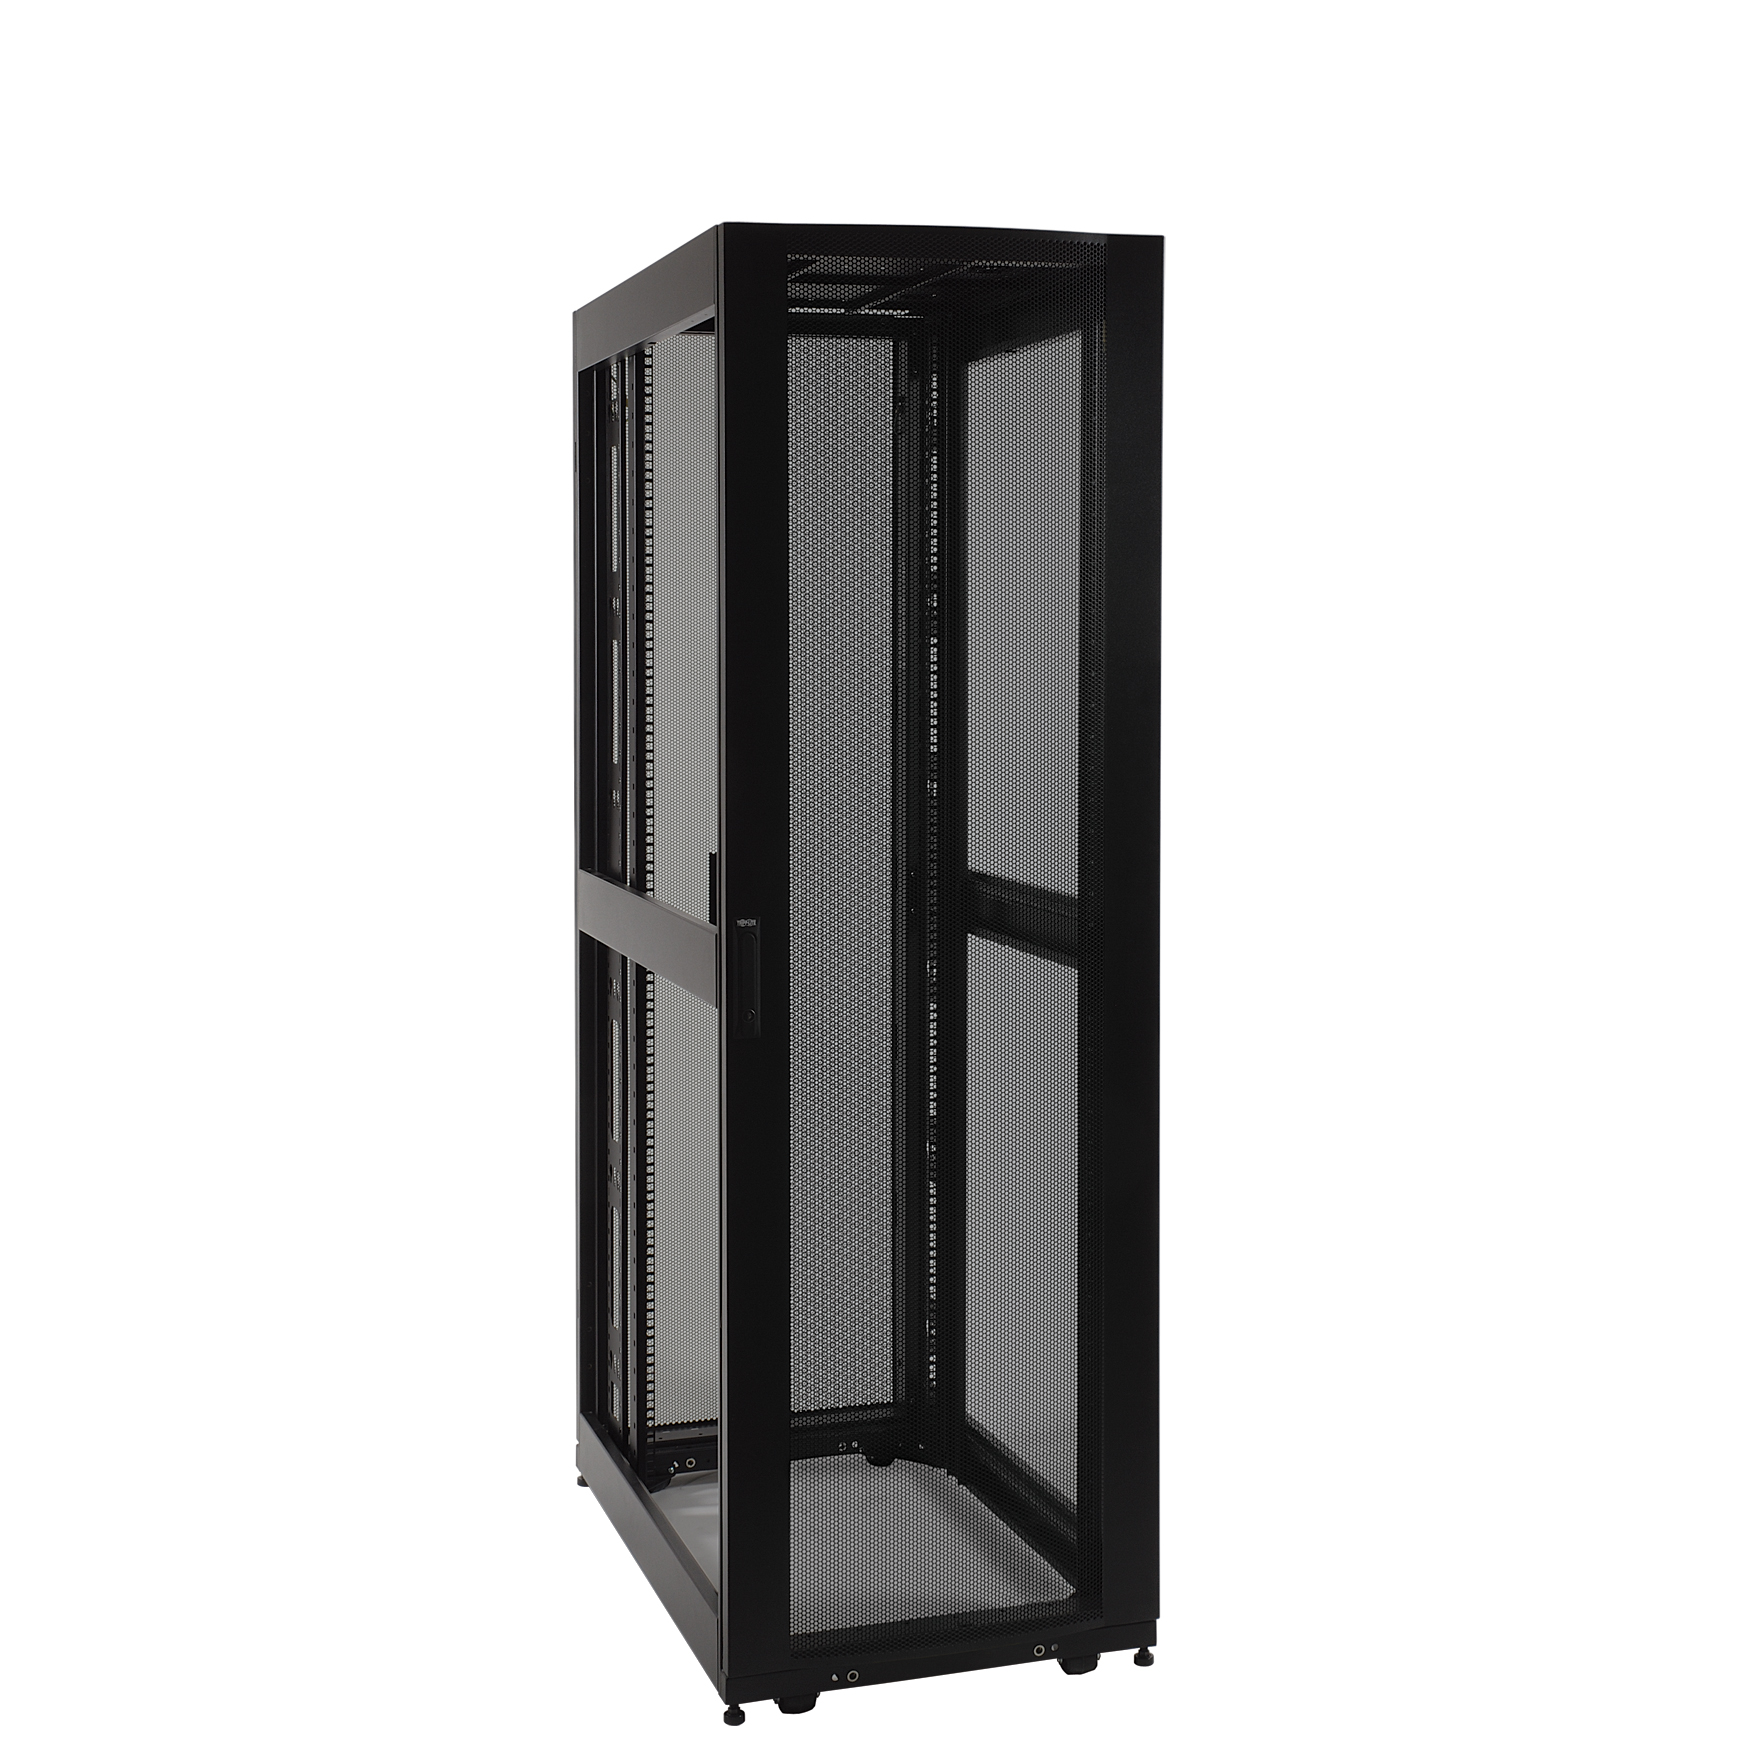 side no premium tripp for cabinets are together buy with server original en enclosure bayed ca lite doors panels ideal when product rack capacity cabinet sides